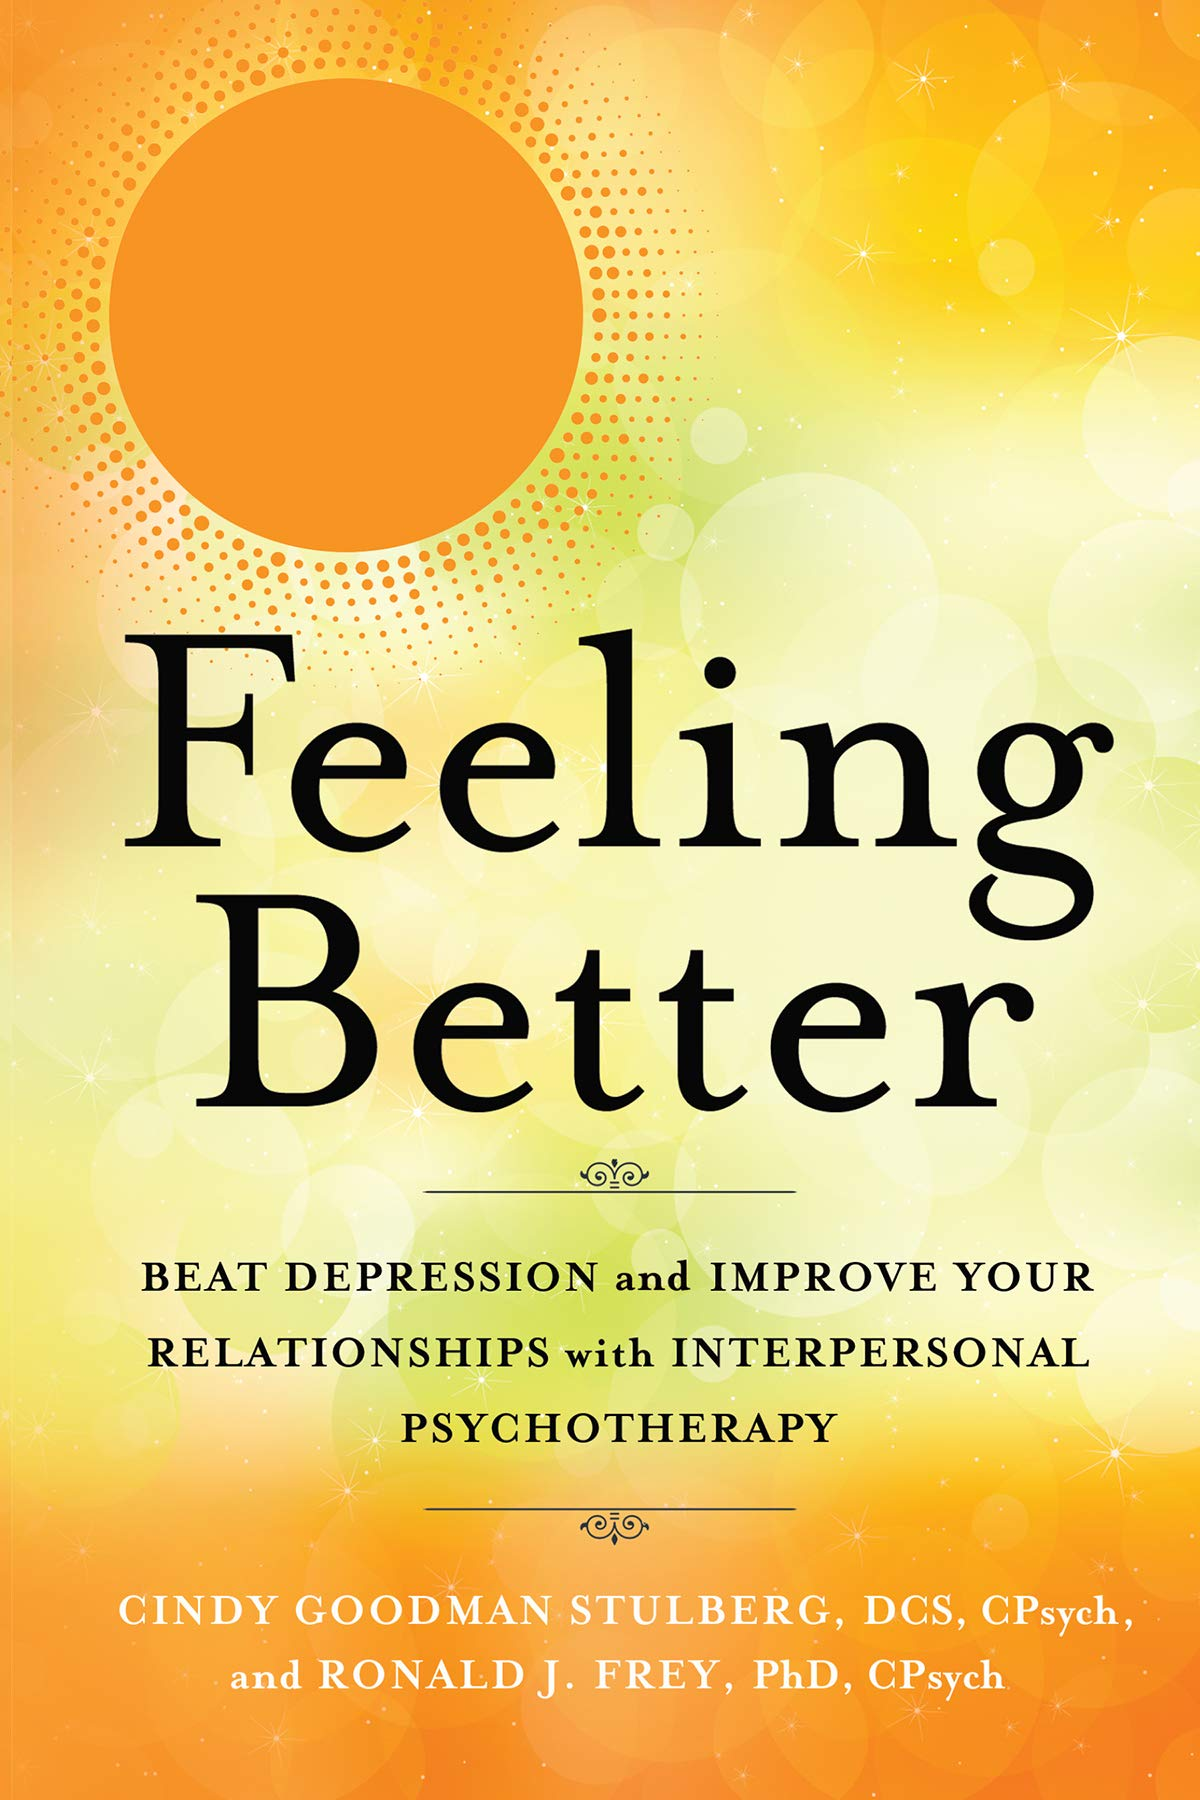 Feeling Better: Beat Depression and Improve Your Relationships with  Interpersonal Psychotherapy: Stulberg DCS CPsych, Cindy Goodman, Frey PhD  CPsych, Ronald J.: 9781608685684: Amazon.com: Books